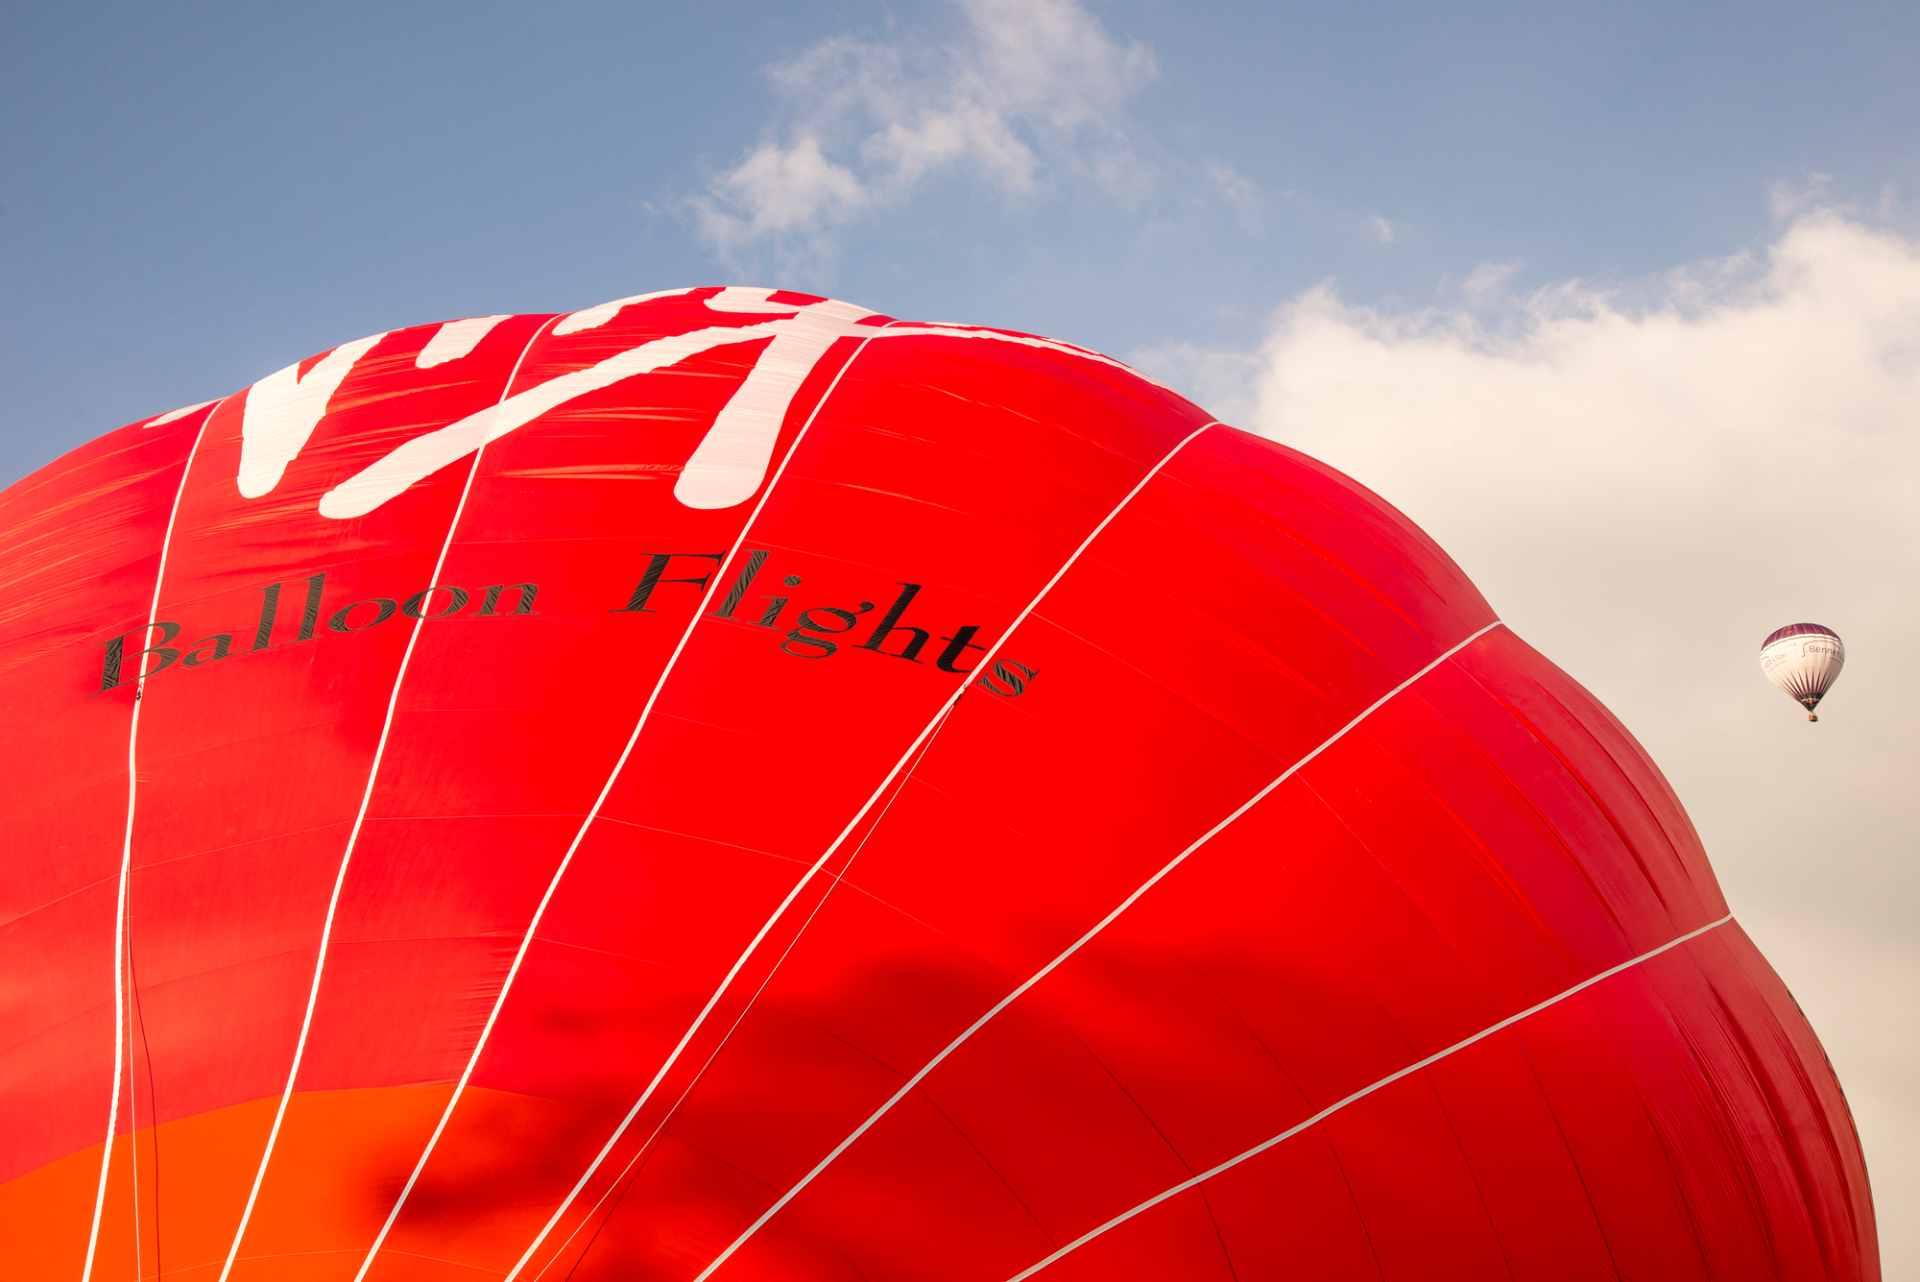 red-virgin-hot-air-balloon-inflating